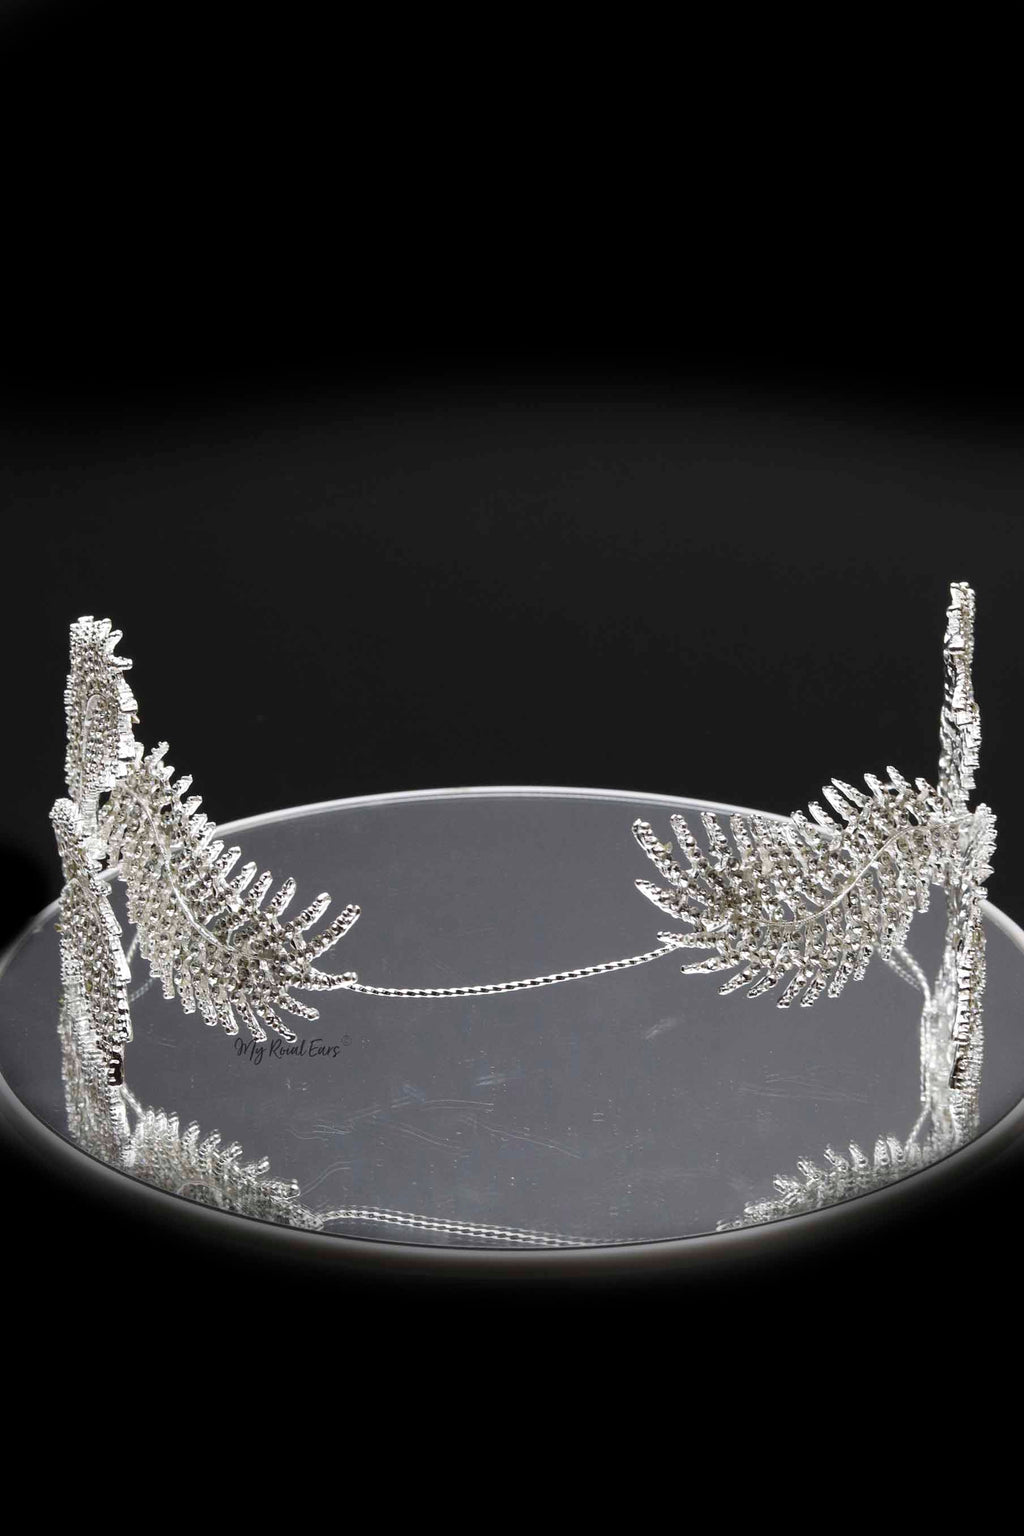 Queen Mandy-crystal feather headpiece - My Roial Ears LTD